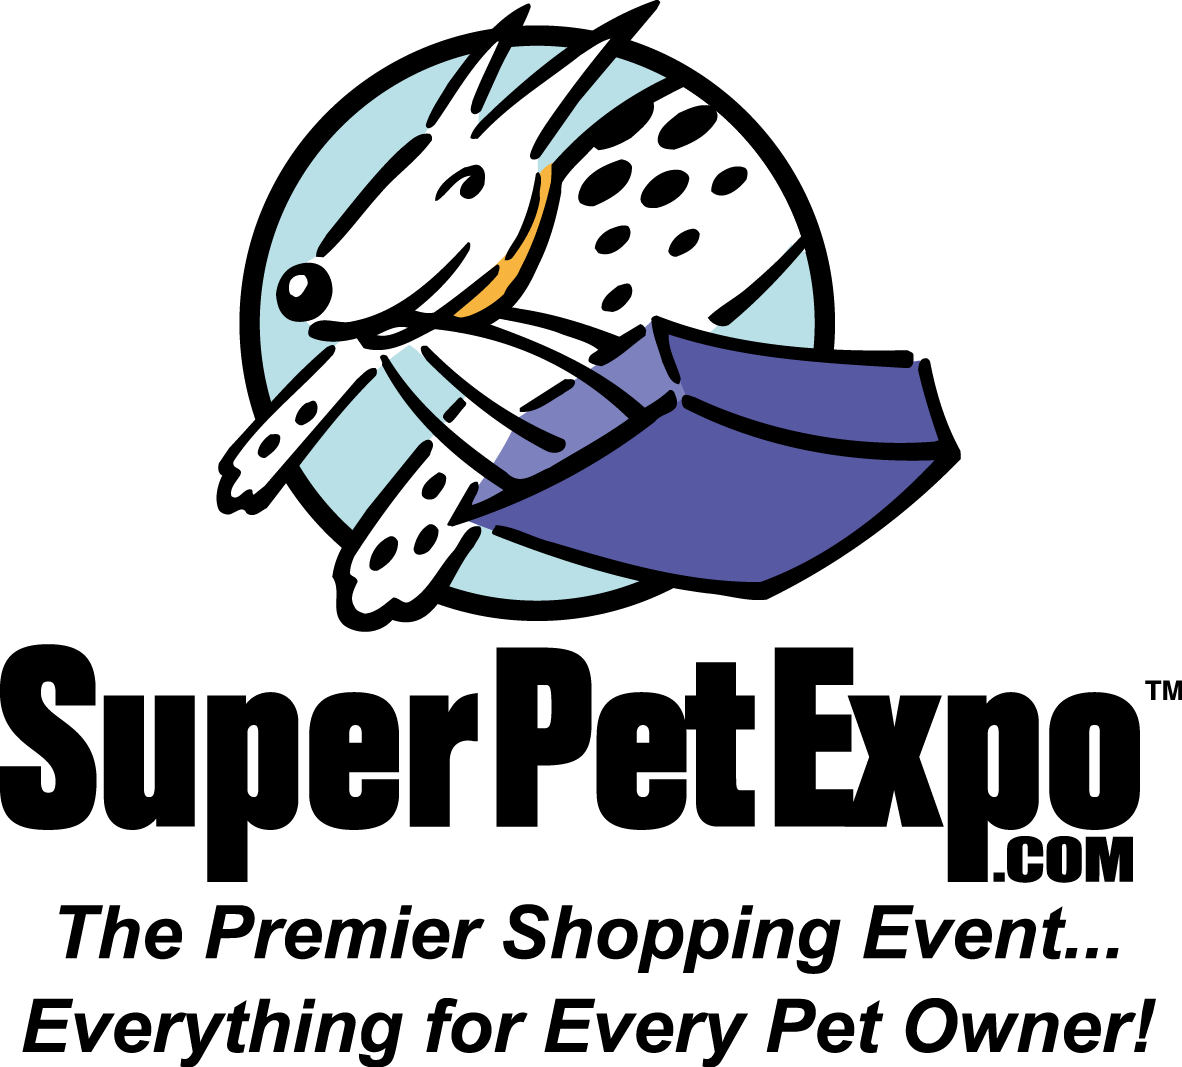 Tickets for 2018 Super Pet Expo Edison NJ in Edison from